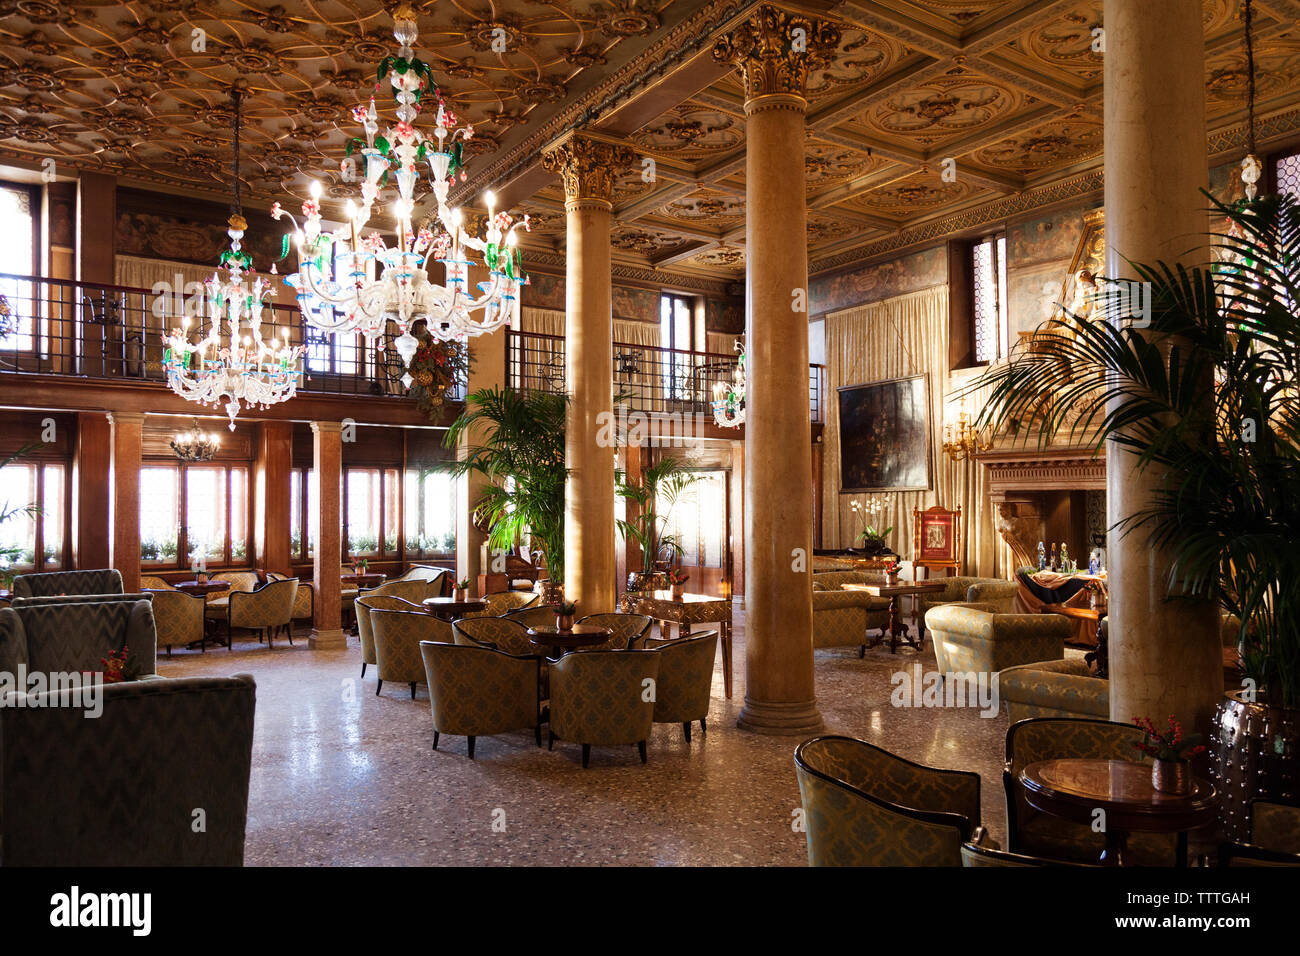 ITALY, Venice. The Lobby of the Hotel Danieli, a Luxury Collection Hotel. - Stock Image